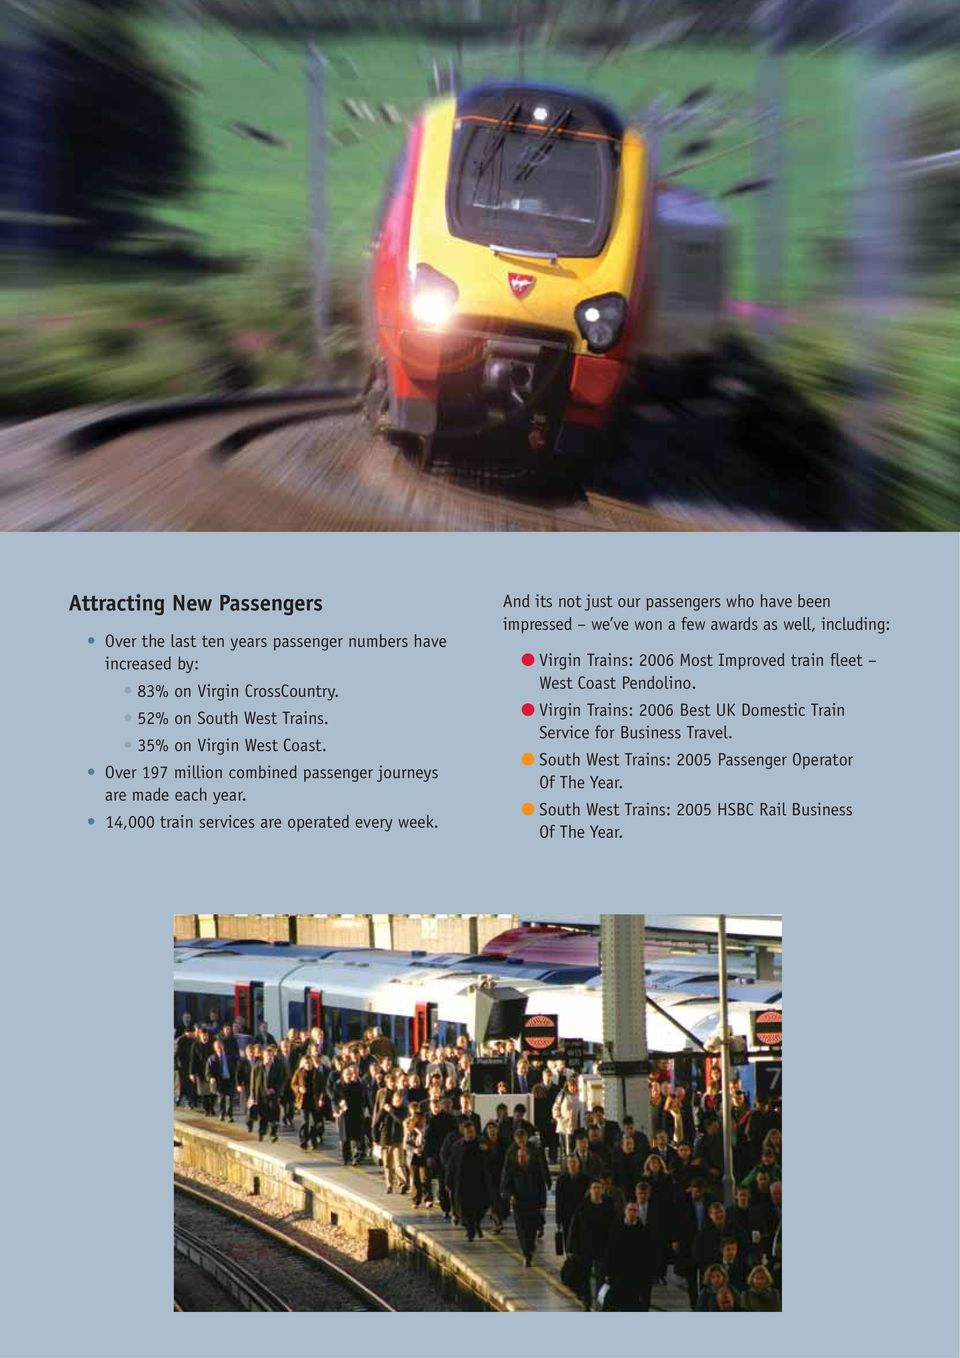 And its not just our passengers who have been impressed we ve won a few awards as well, including: Virgin Trains: 2006 Most Improved train fleet West Coast